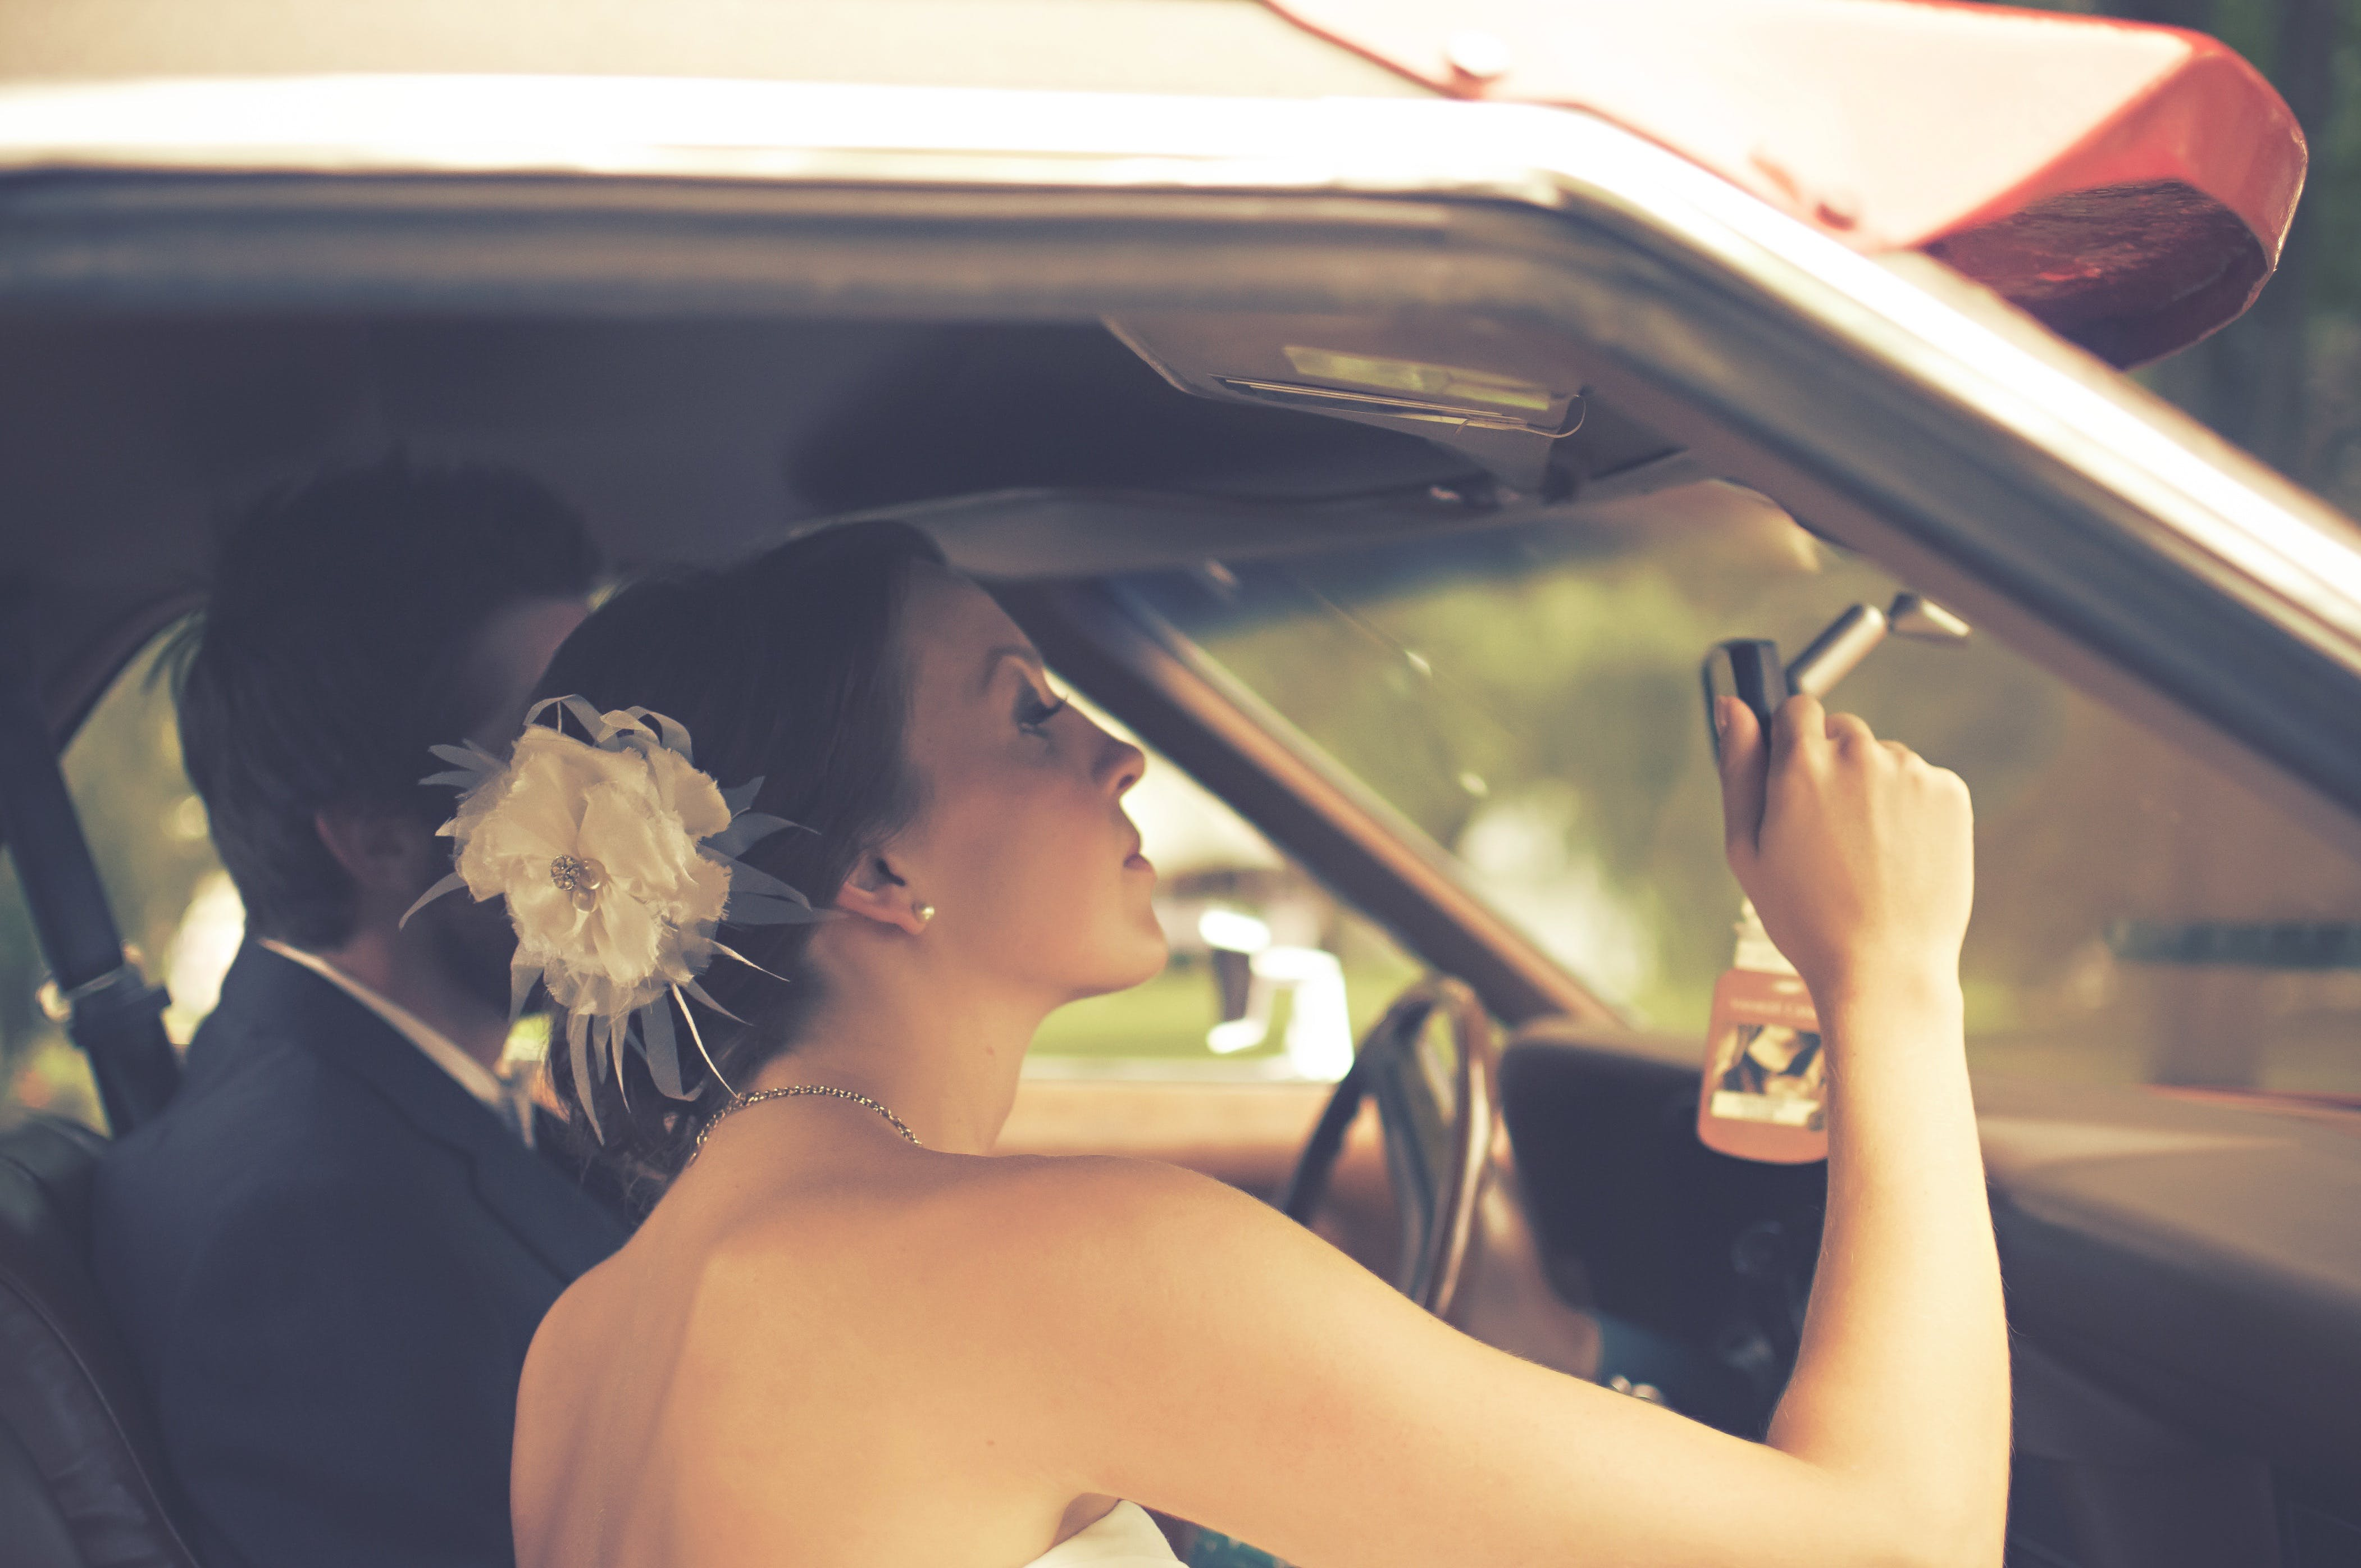 Bride and Groom Sitting Inside Vehicle